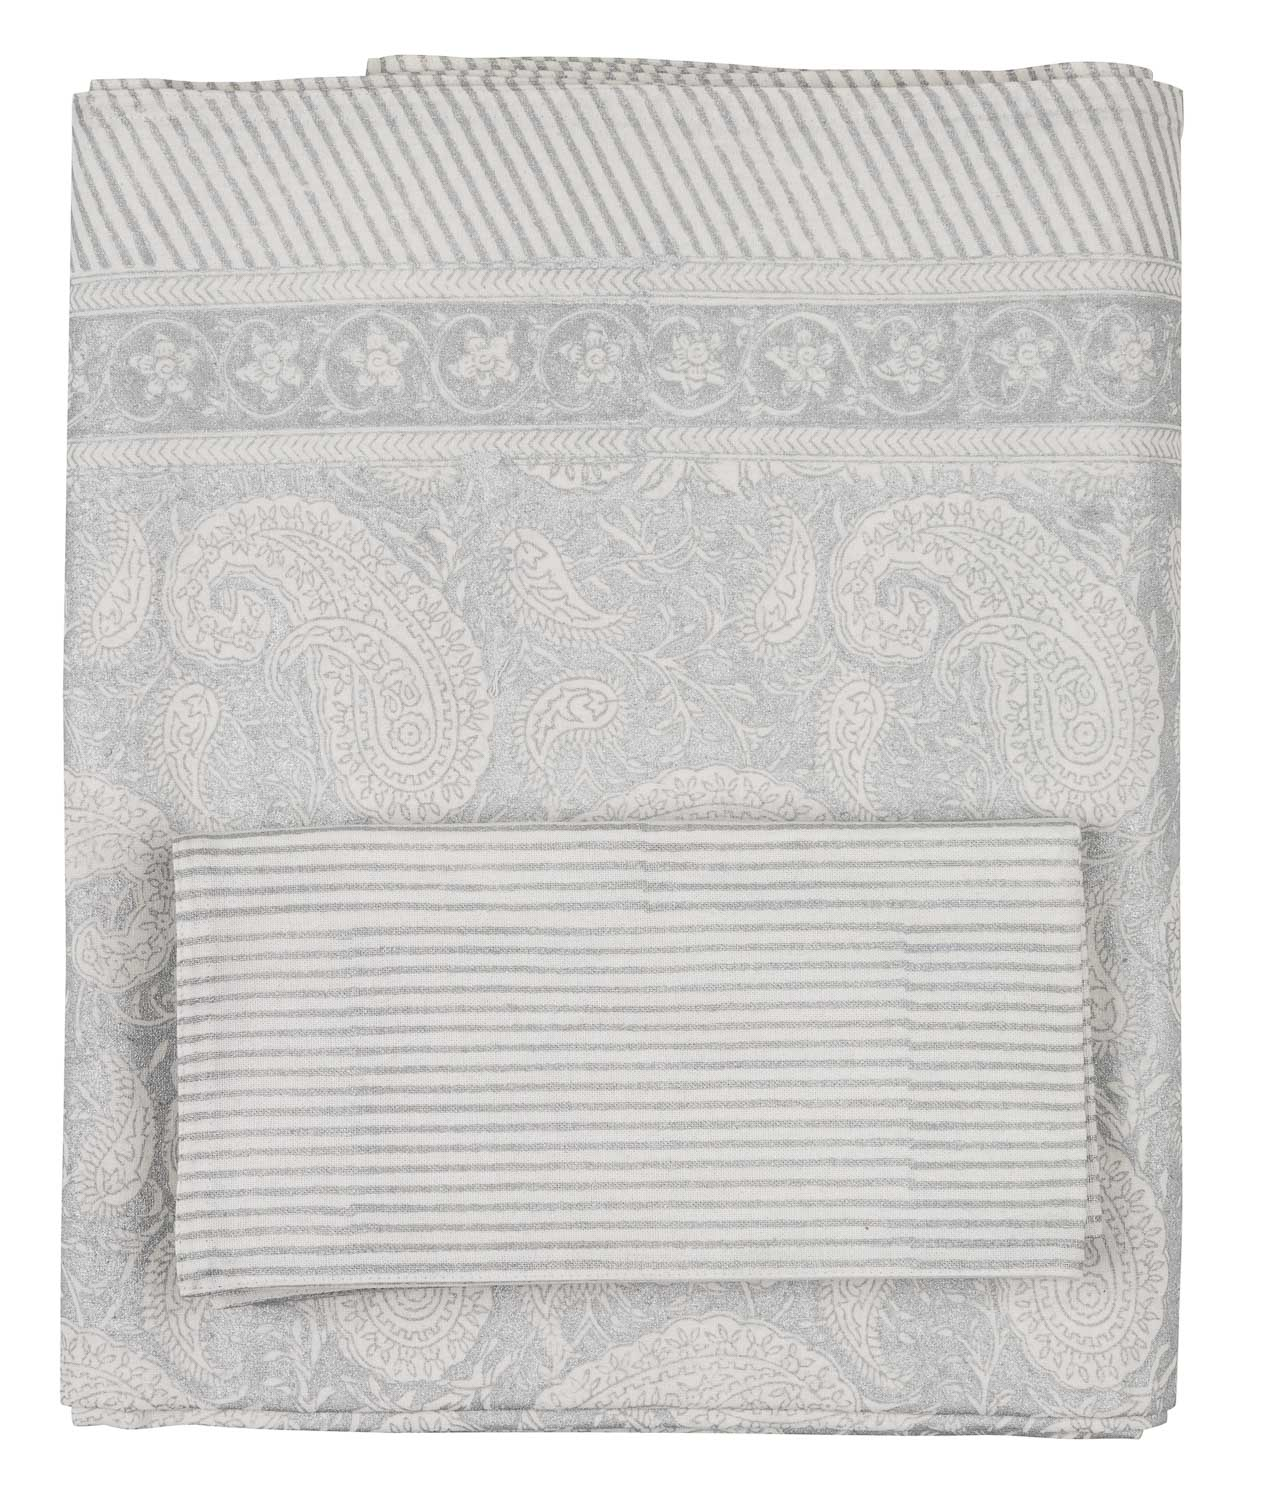 Tablecloth with Big Paisley® print in Silver